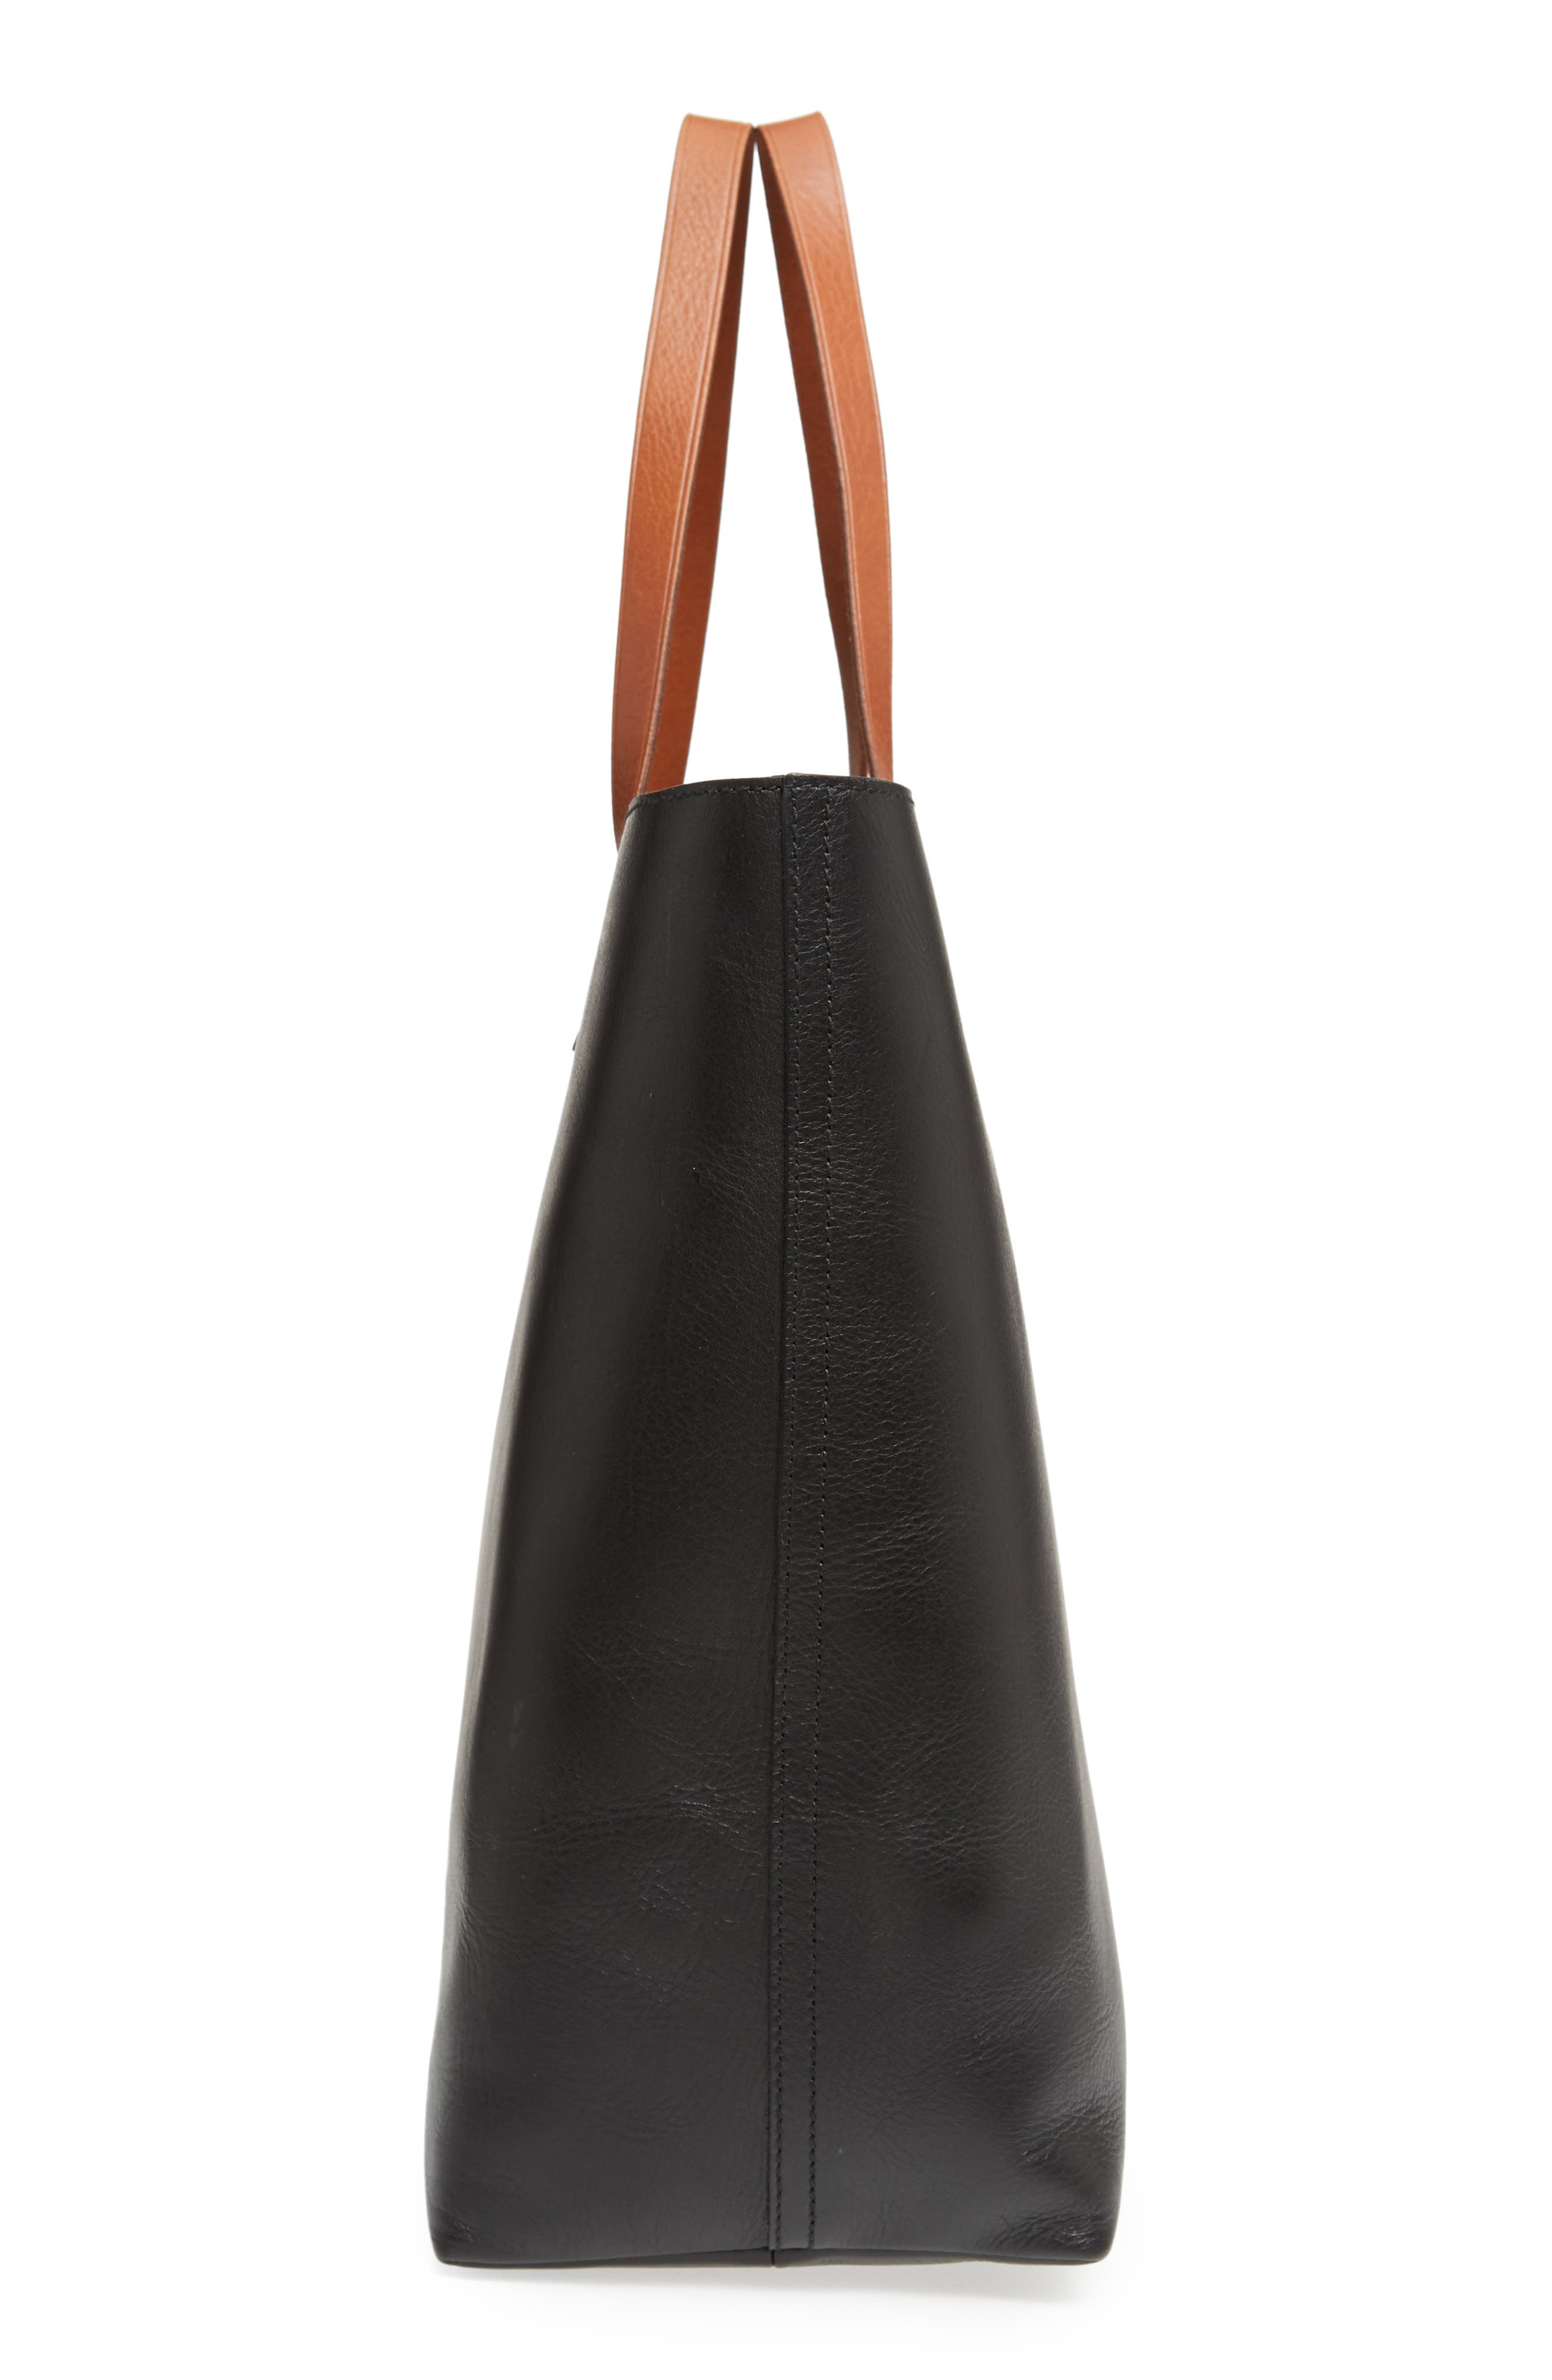 MADEWELL, Zip Top Transport Leather Tote, Alternate thumbnail 6, color, TRUE BLACK W/ BROWN